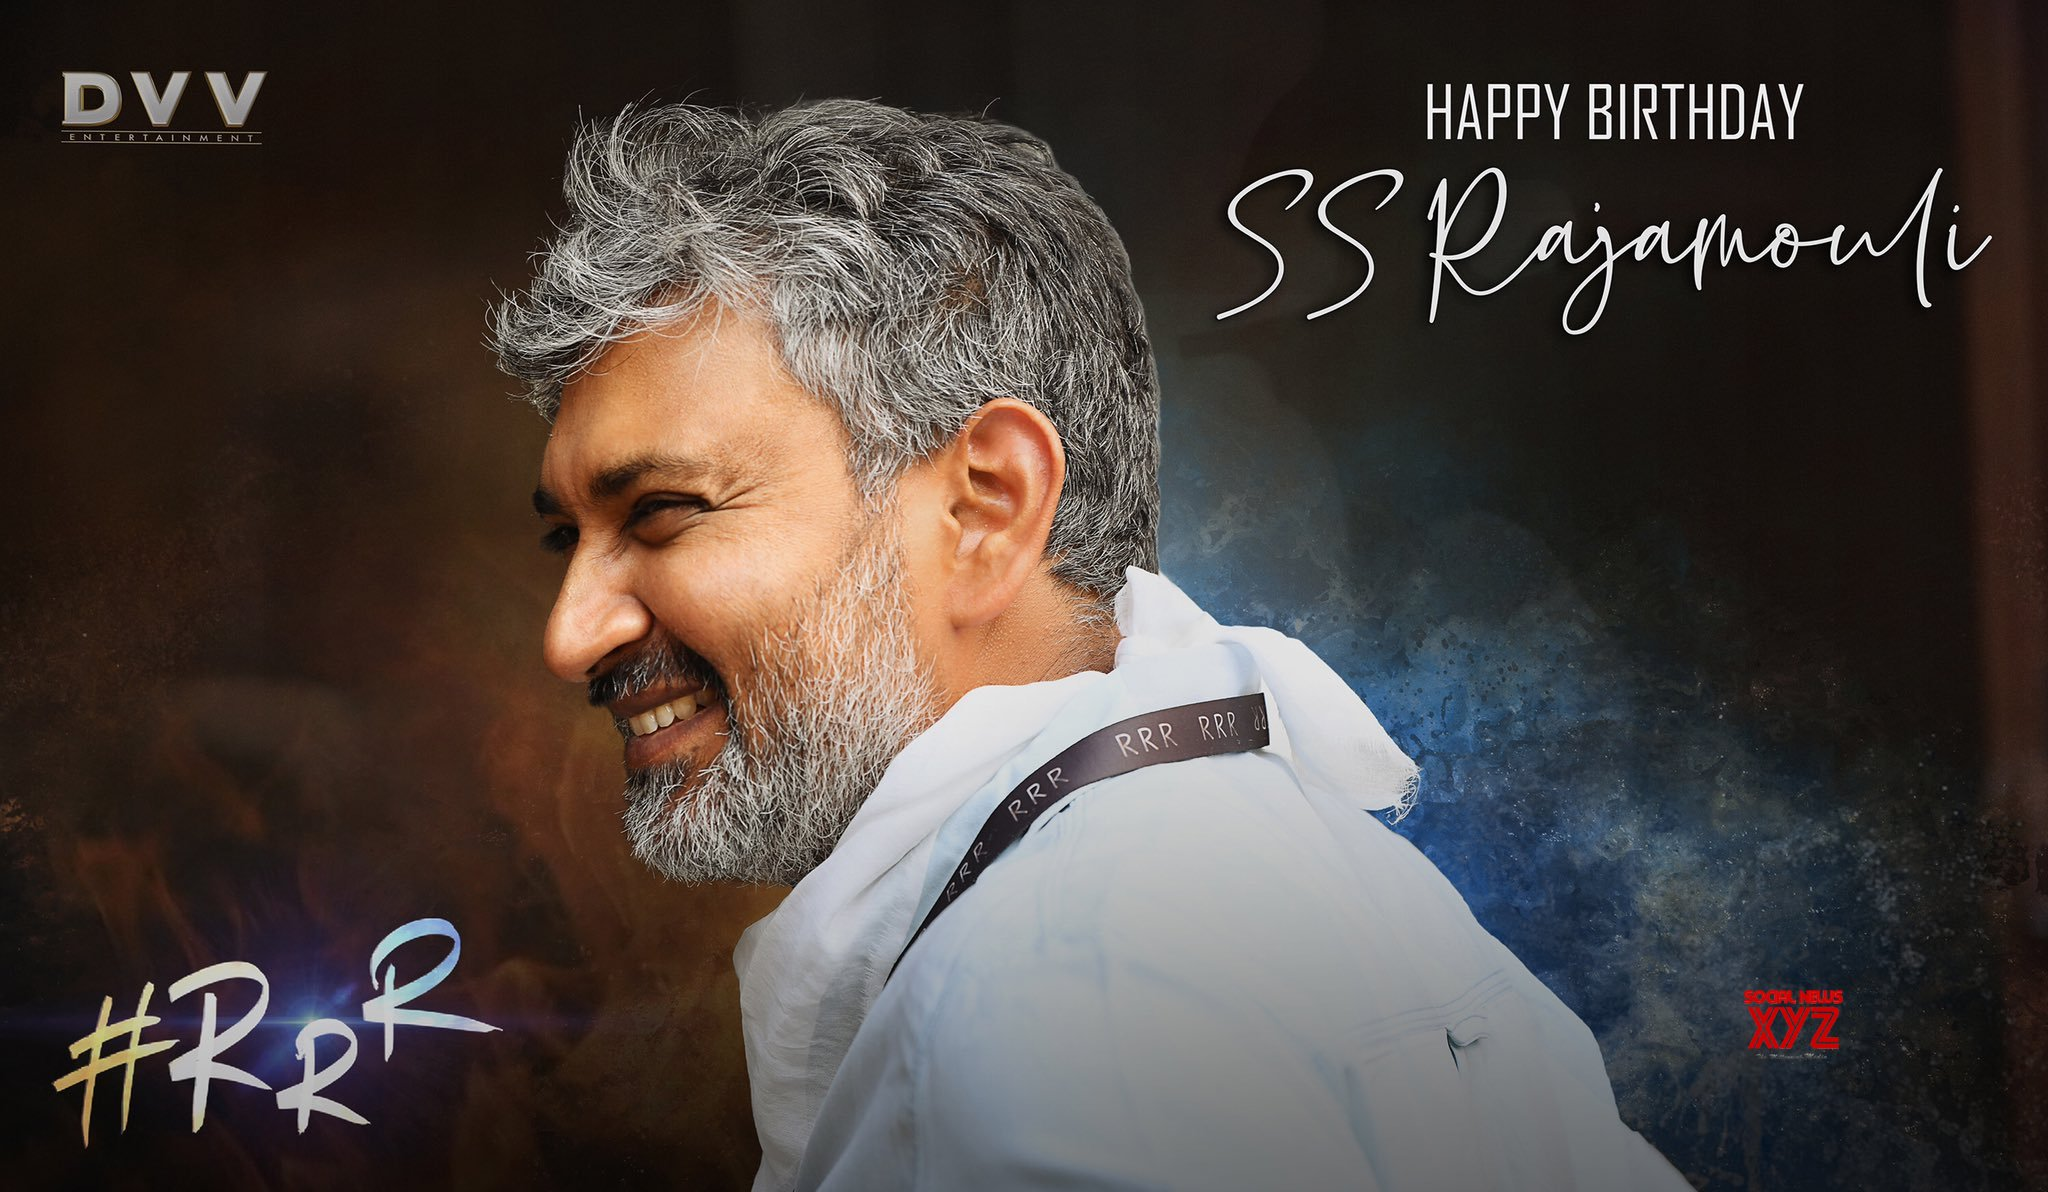 SS Rajamouli Birthday Wishes Poster From RRR Team